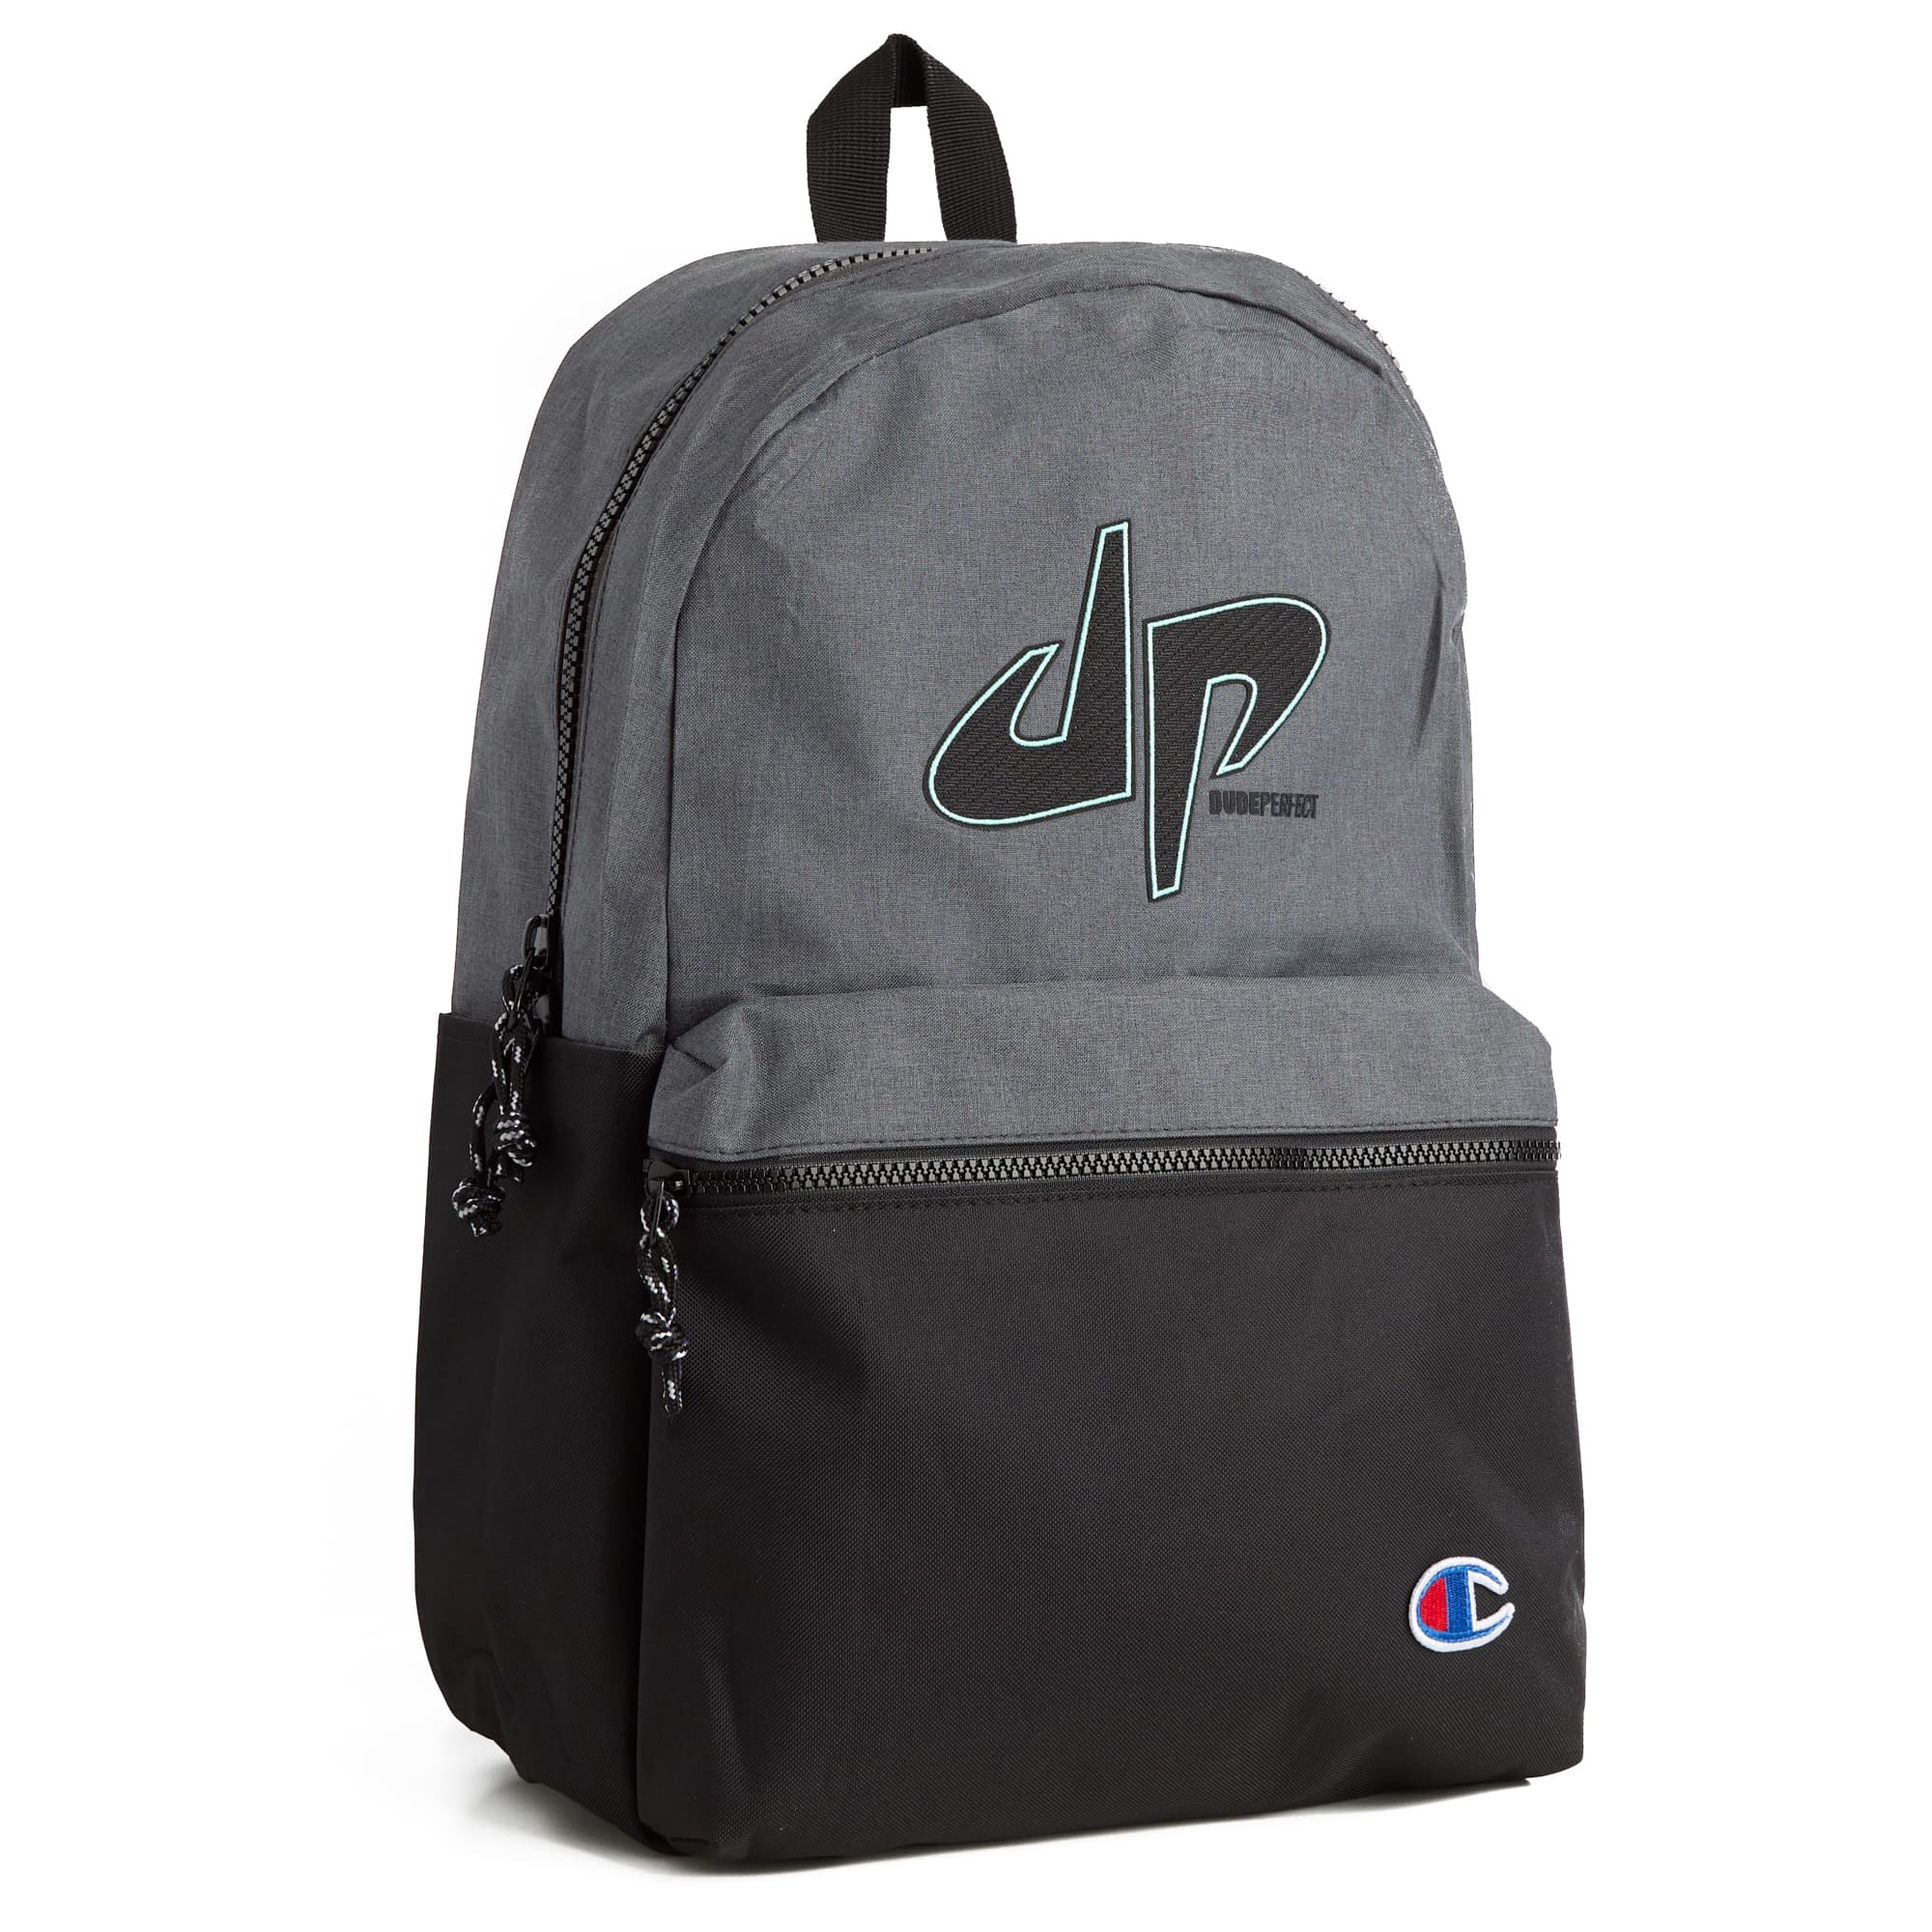 Dude Perfect 'Classics' Champion Backpack